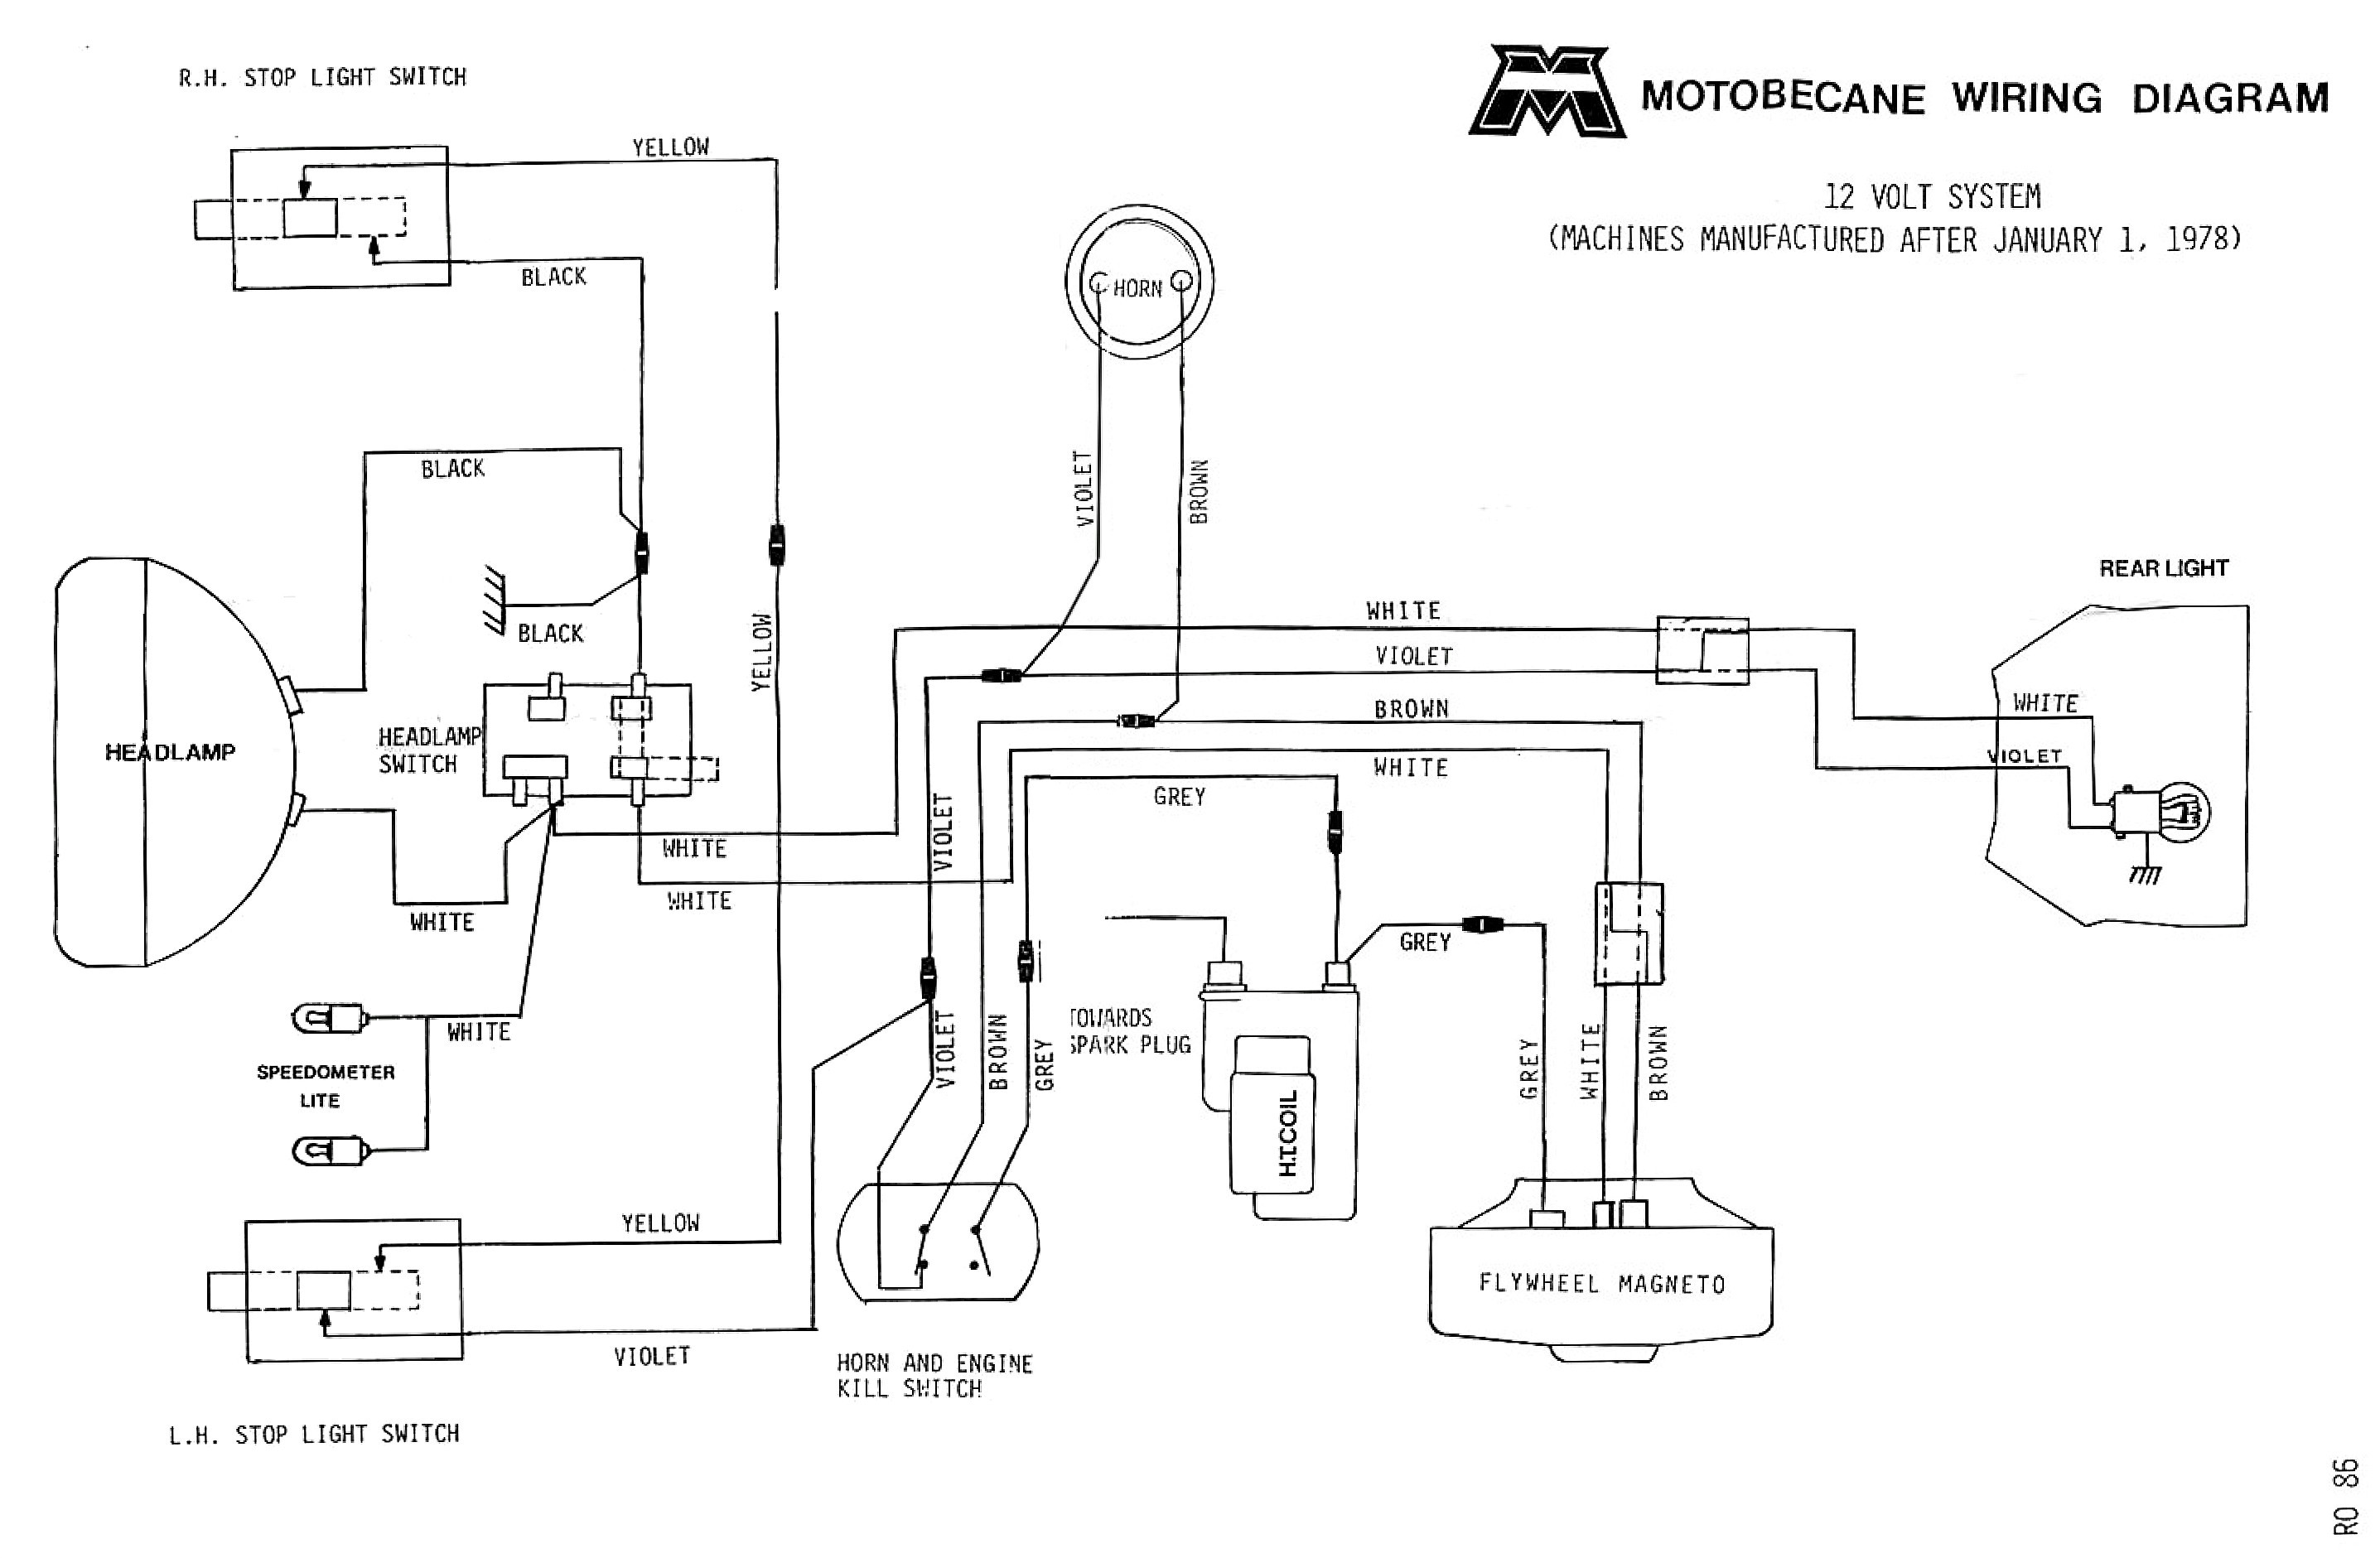 8n Ford Tractor Wiring Harness Diagram - Wiring Diagram SchemesWiring Diagram Schemes - Mein-Raetien